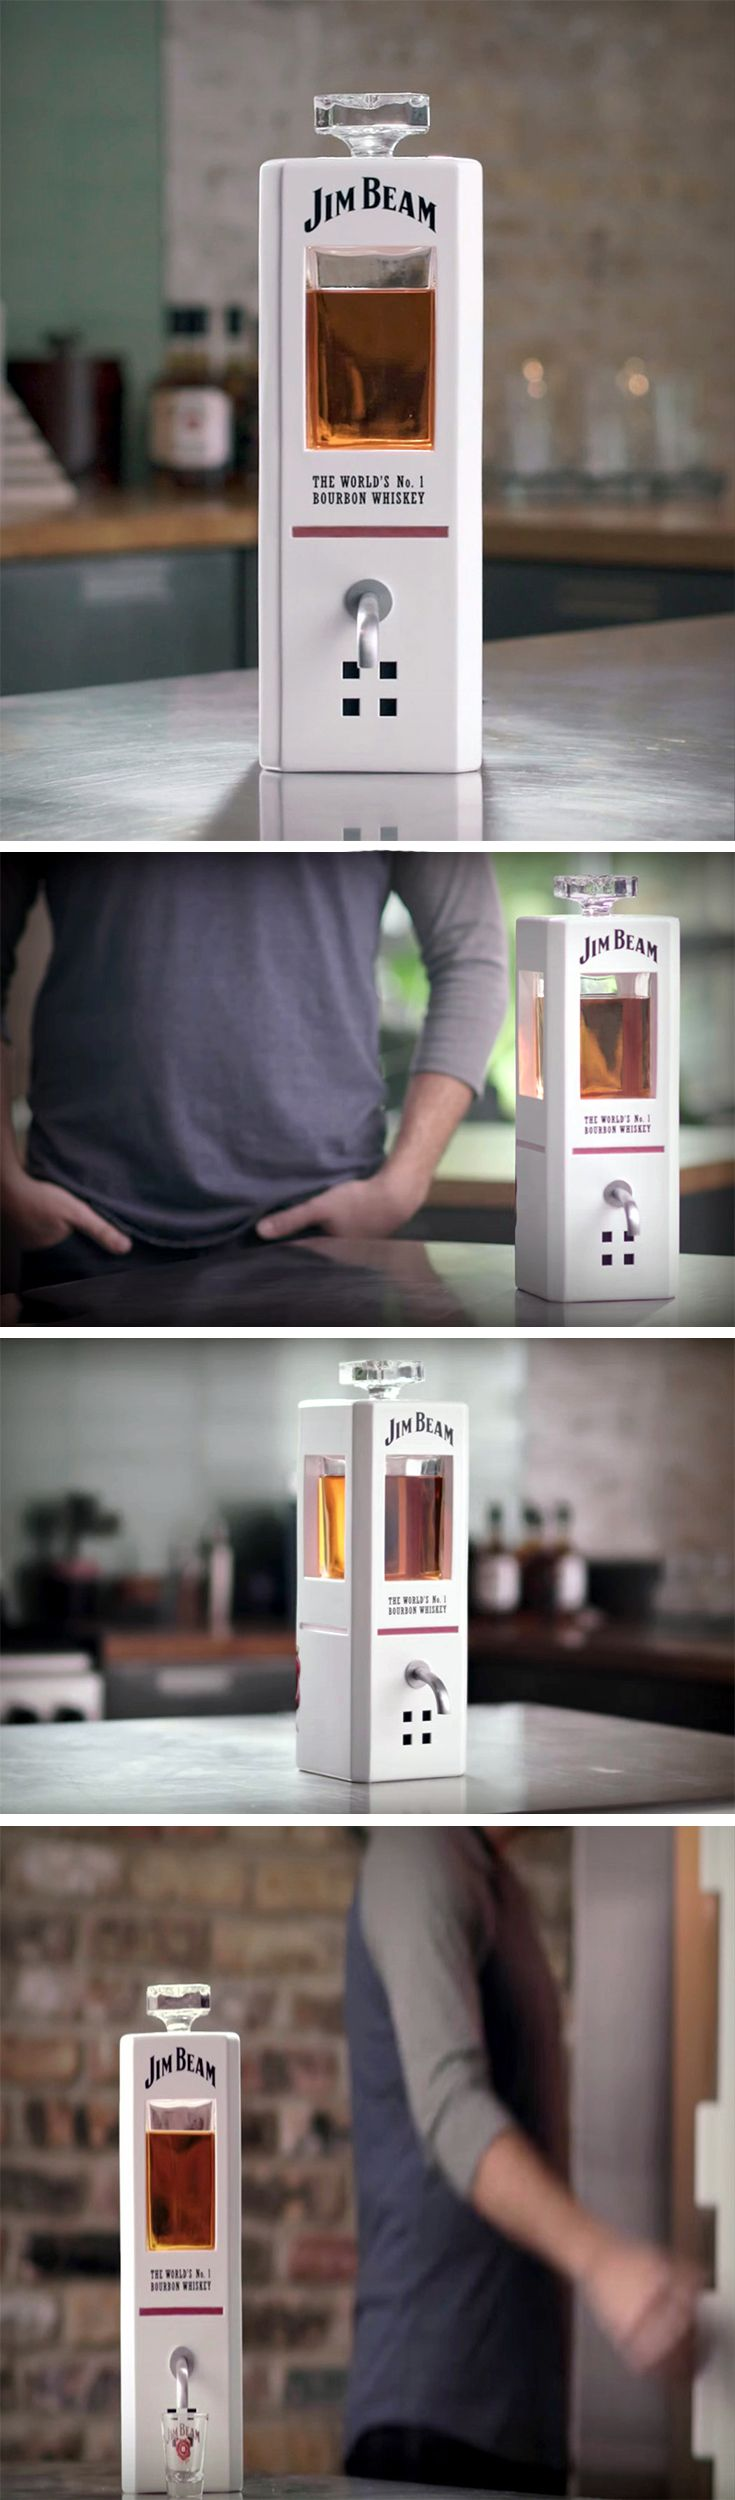 With the world going Amazon Alexa crazy, Jim Beam is bringing out their own smart device – JIM, the smart decanter. That's right, a smart whiskey decanter. It is to be believed the decanter has built-in voice control system which allows the user to command the device to pour a shot of whiskey from across the room. The recordings aren't a generic voice; they are of Fred Noe, a master distiller at Jim Beam.